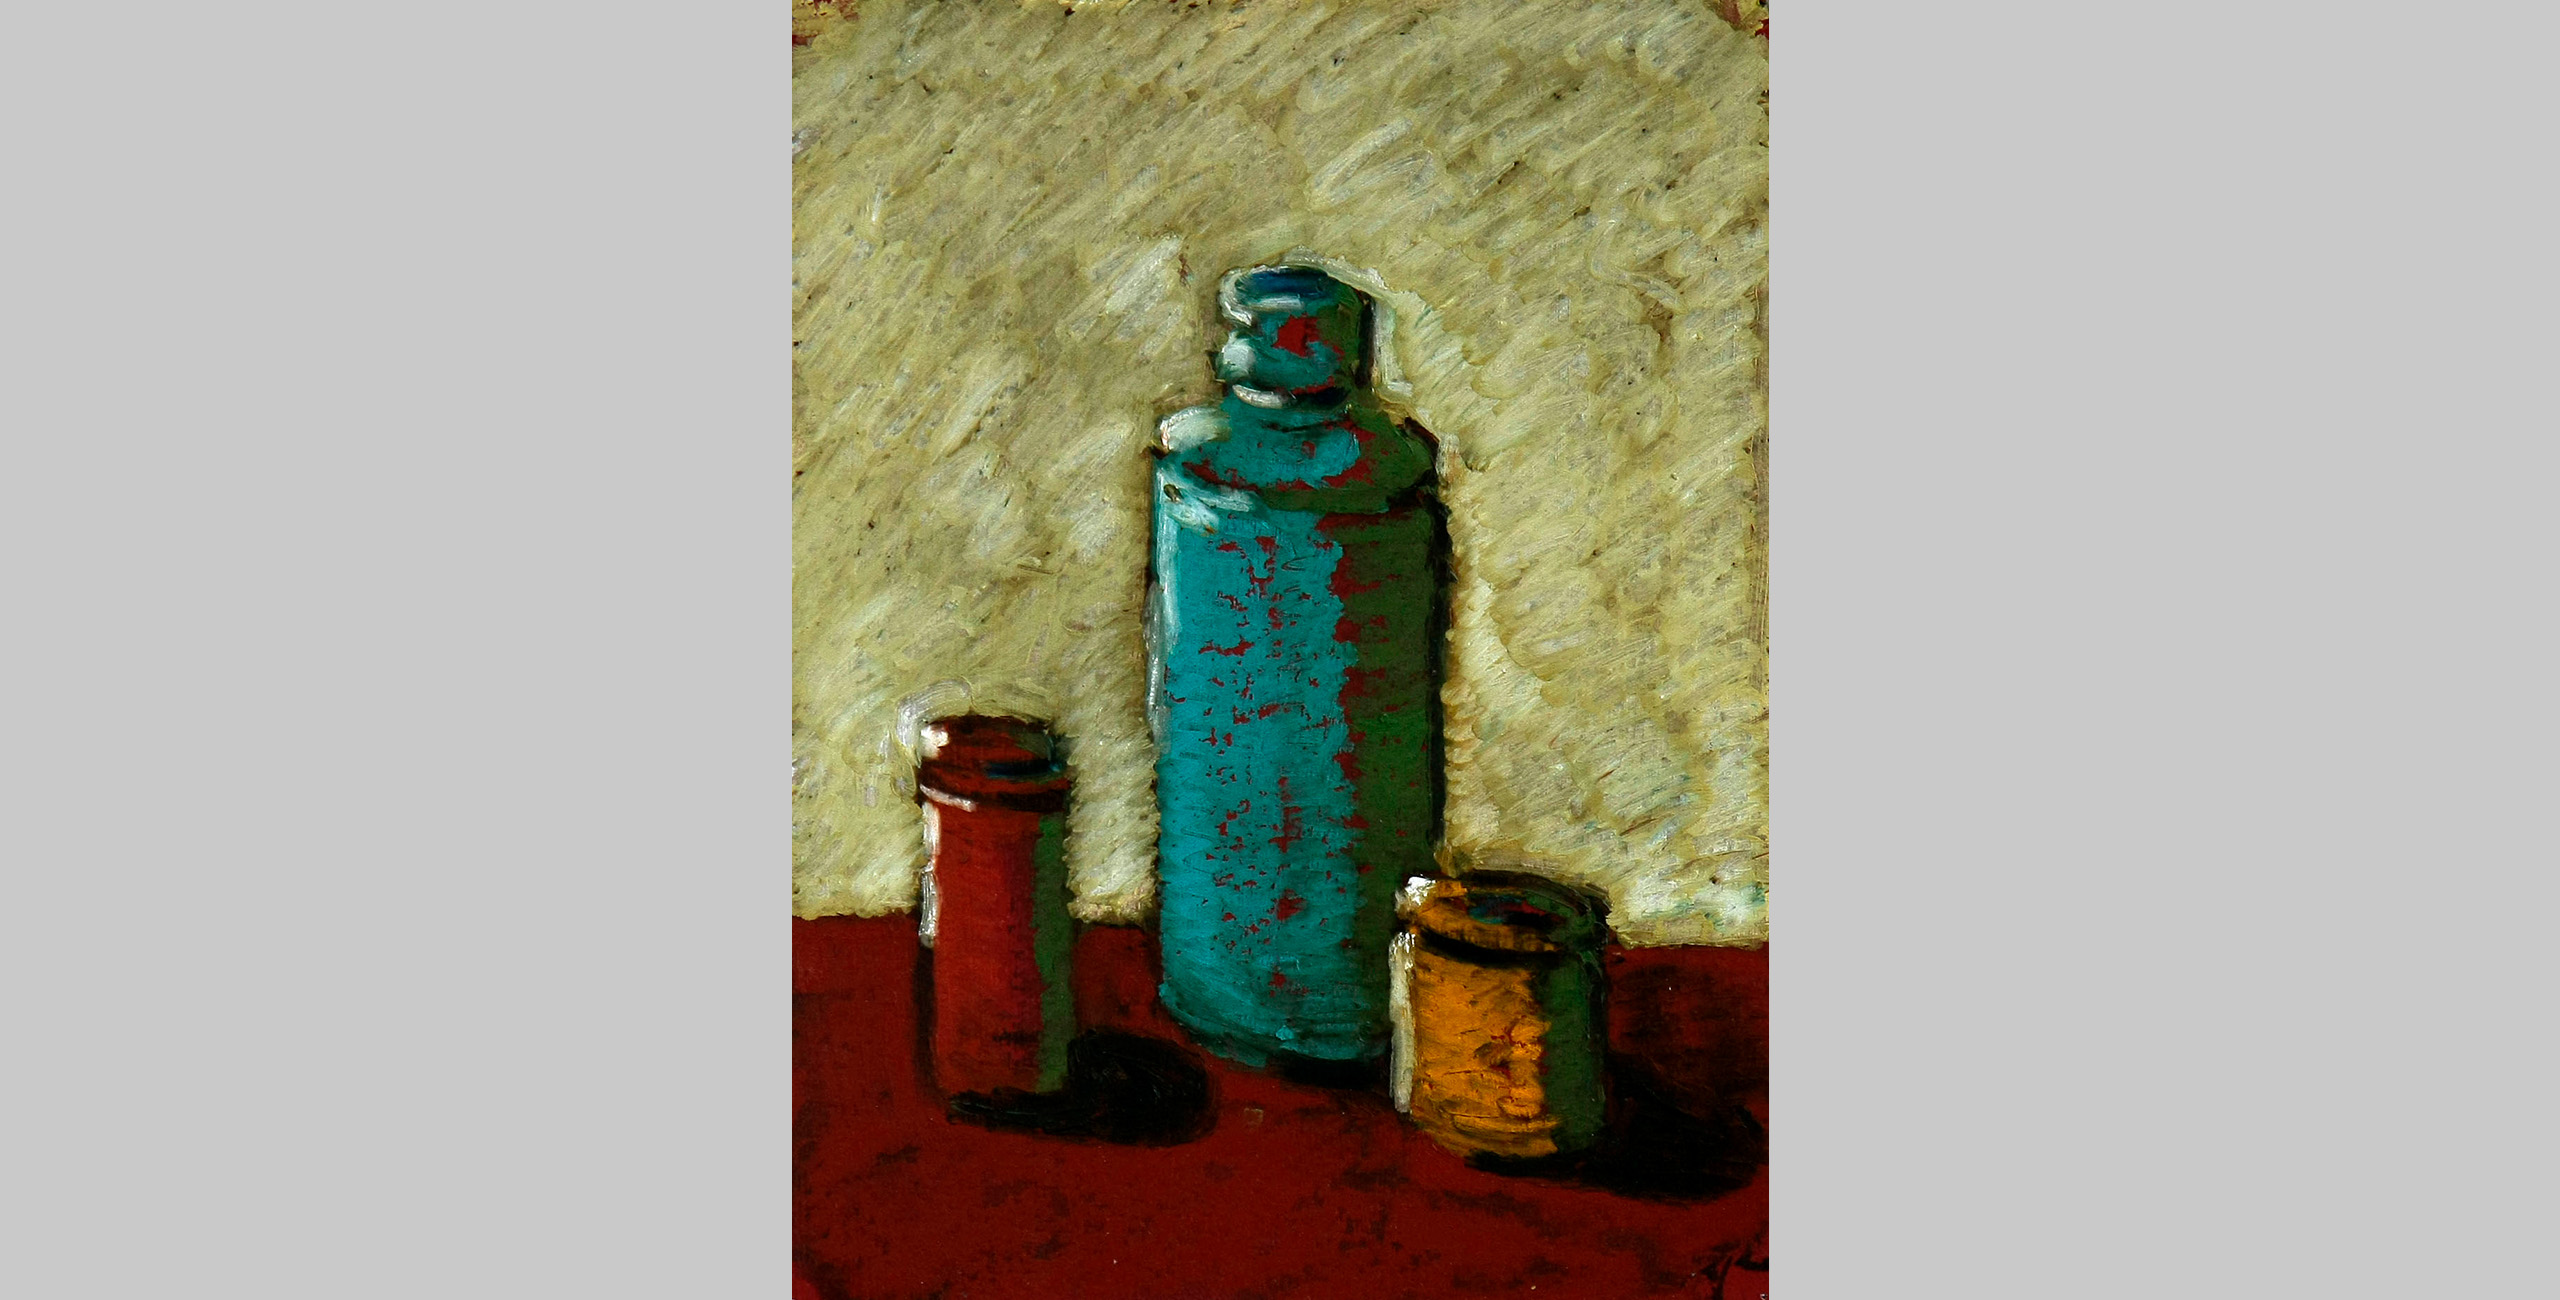 Still Life with Jars, 2009, oil bar on panel, 9 x 12 in.